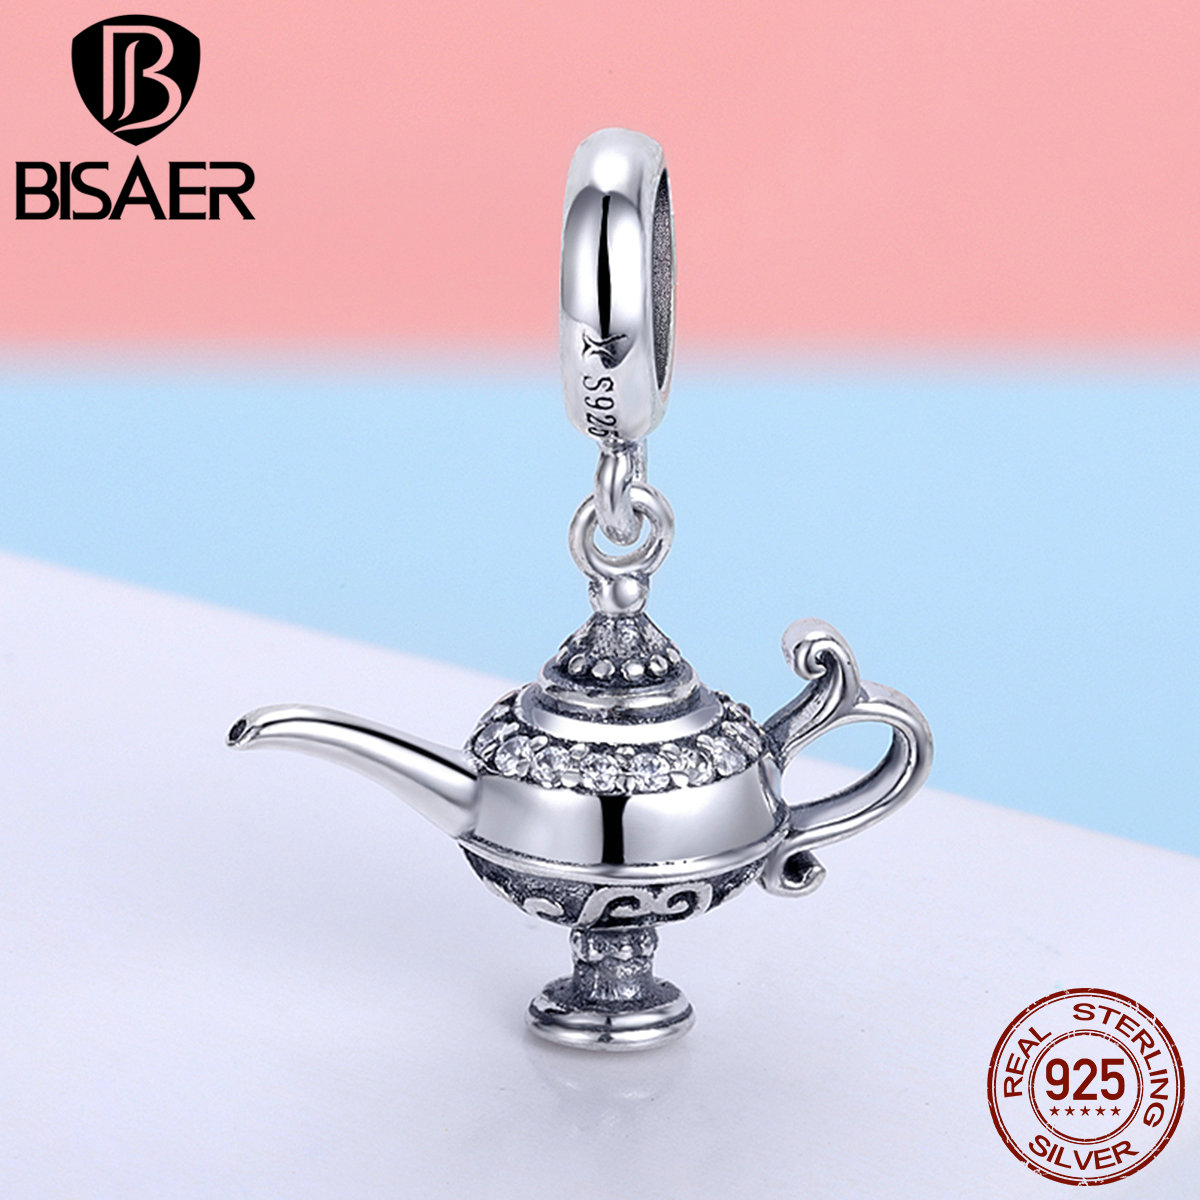 Beads Jewelry & Accessories Sterling Silver Charms Pendant Beads Magic Snake Diy Pendants For Original Pandora 925 Sterling Silver Bracelets Bangles Xcy218